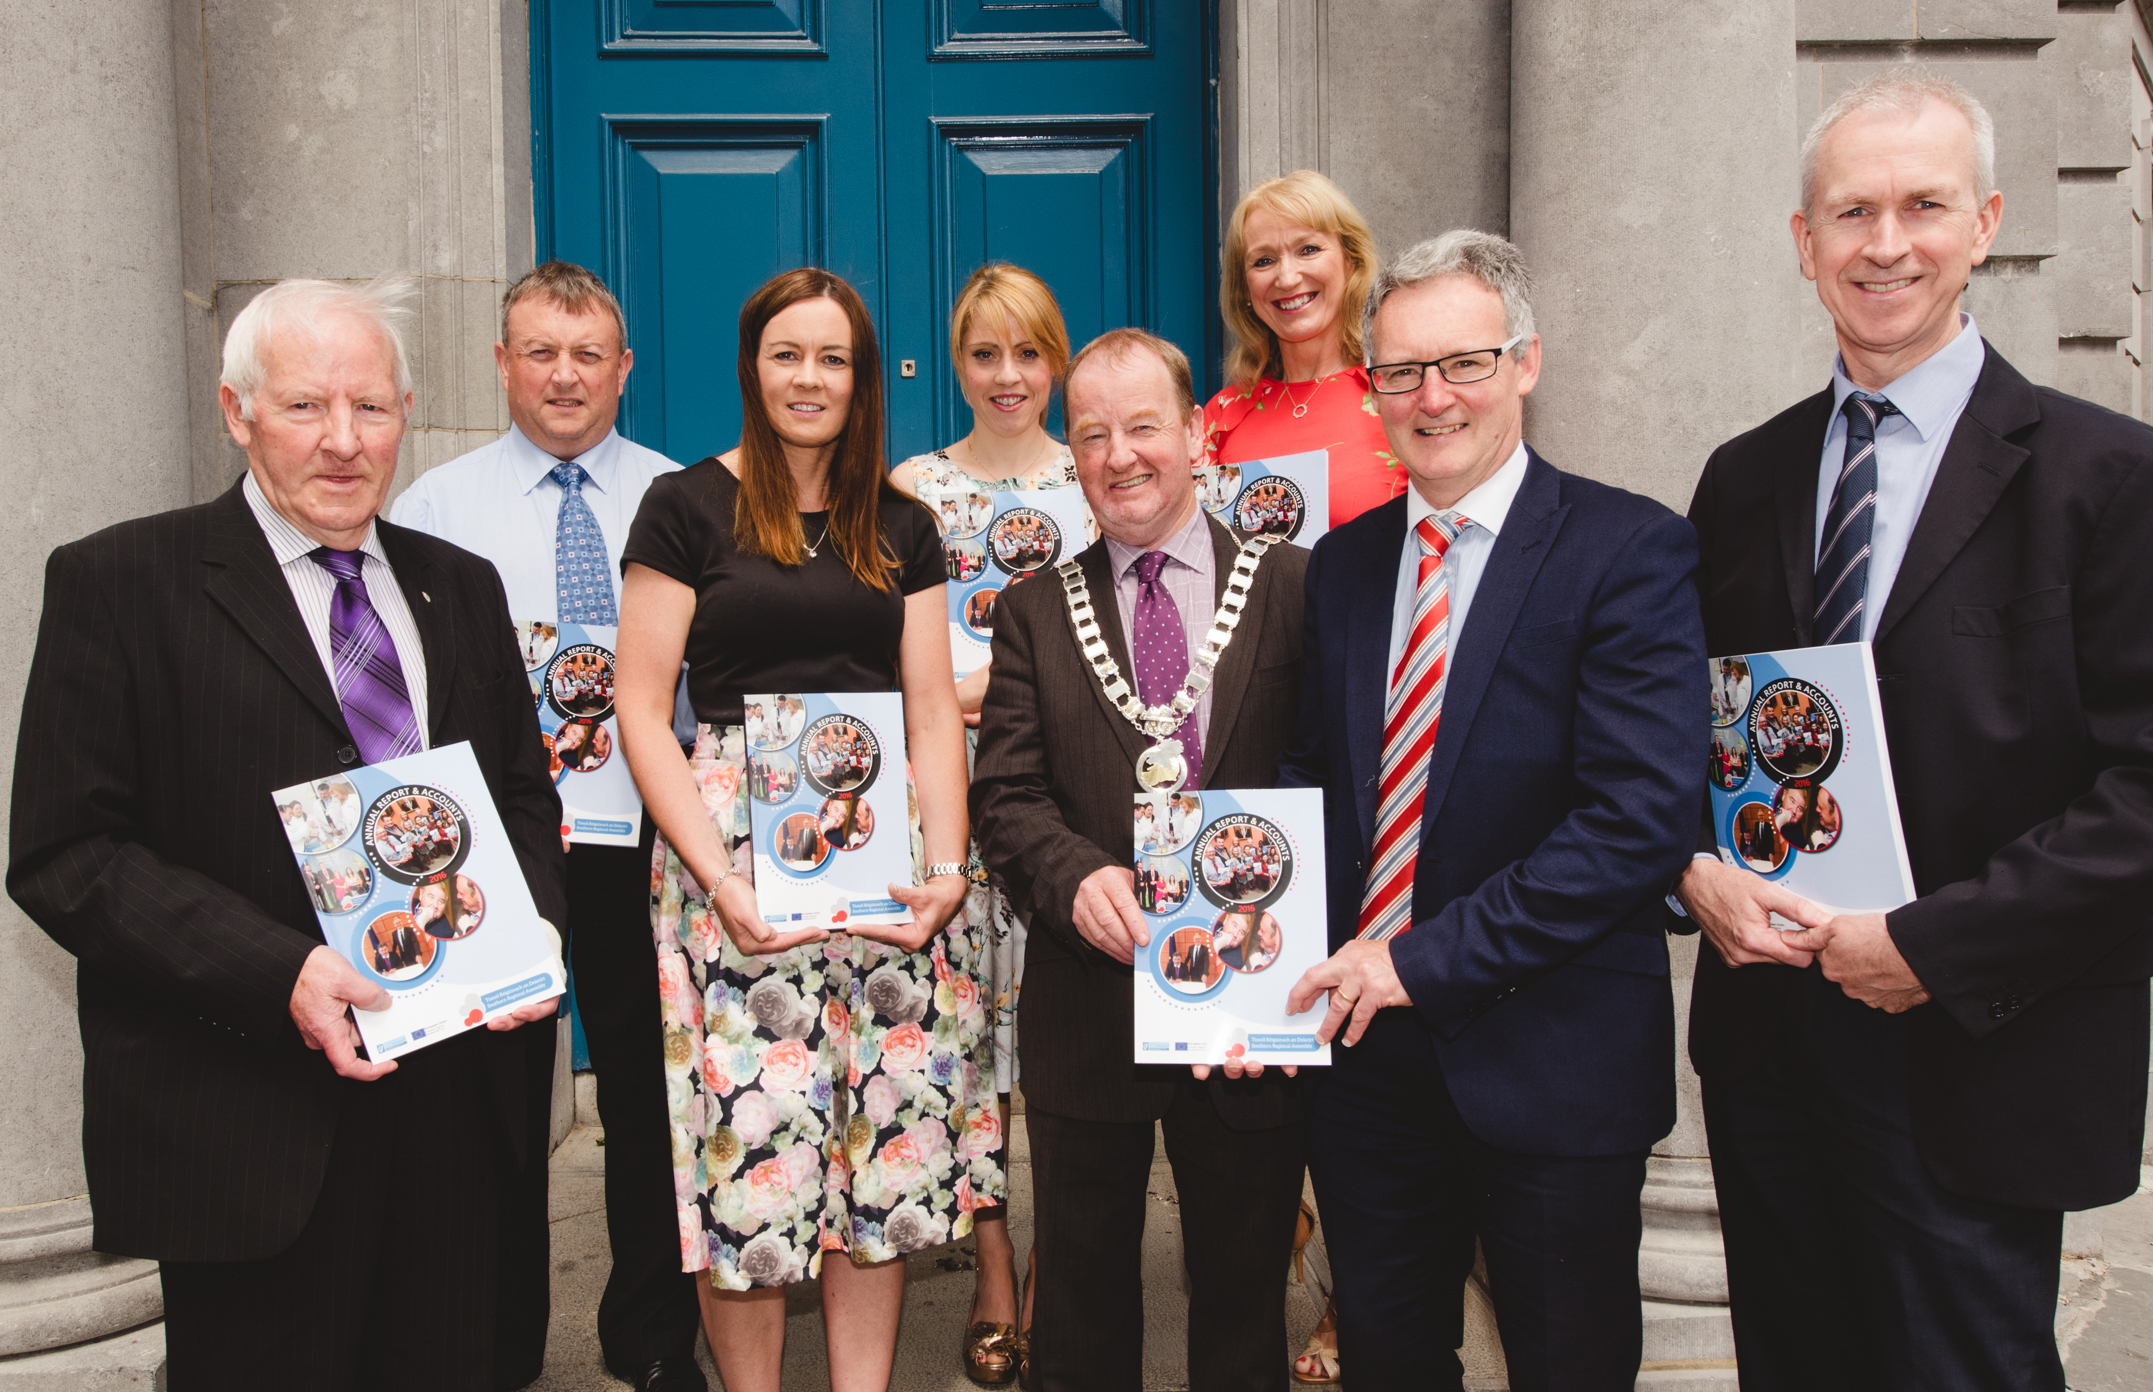 Launch of the Assembly's Annual Report 2016